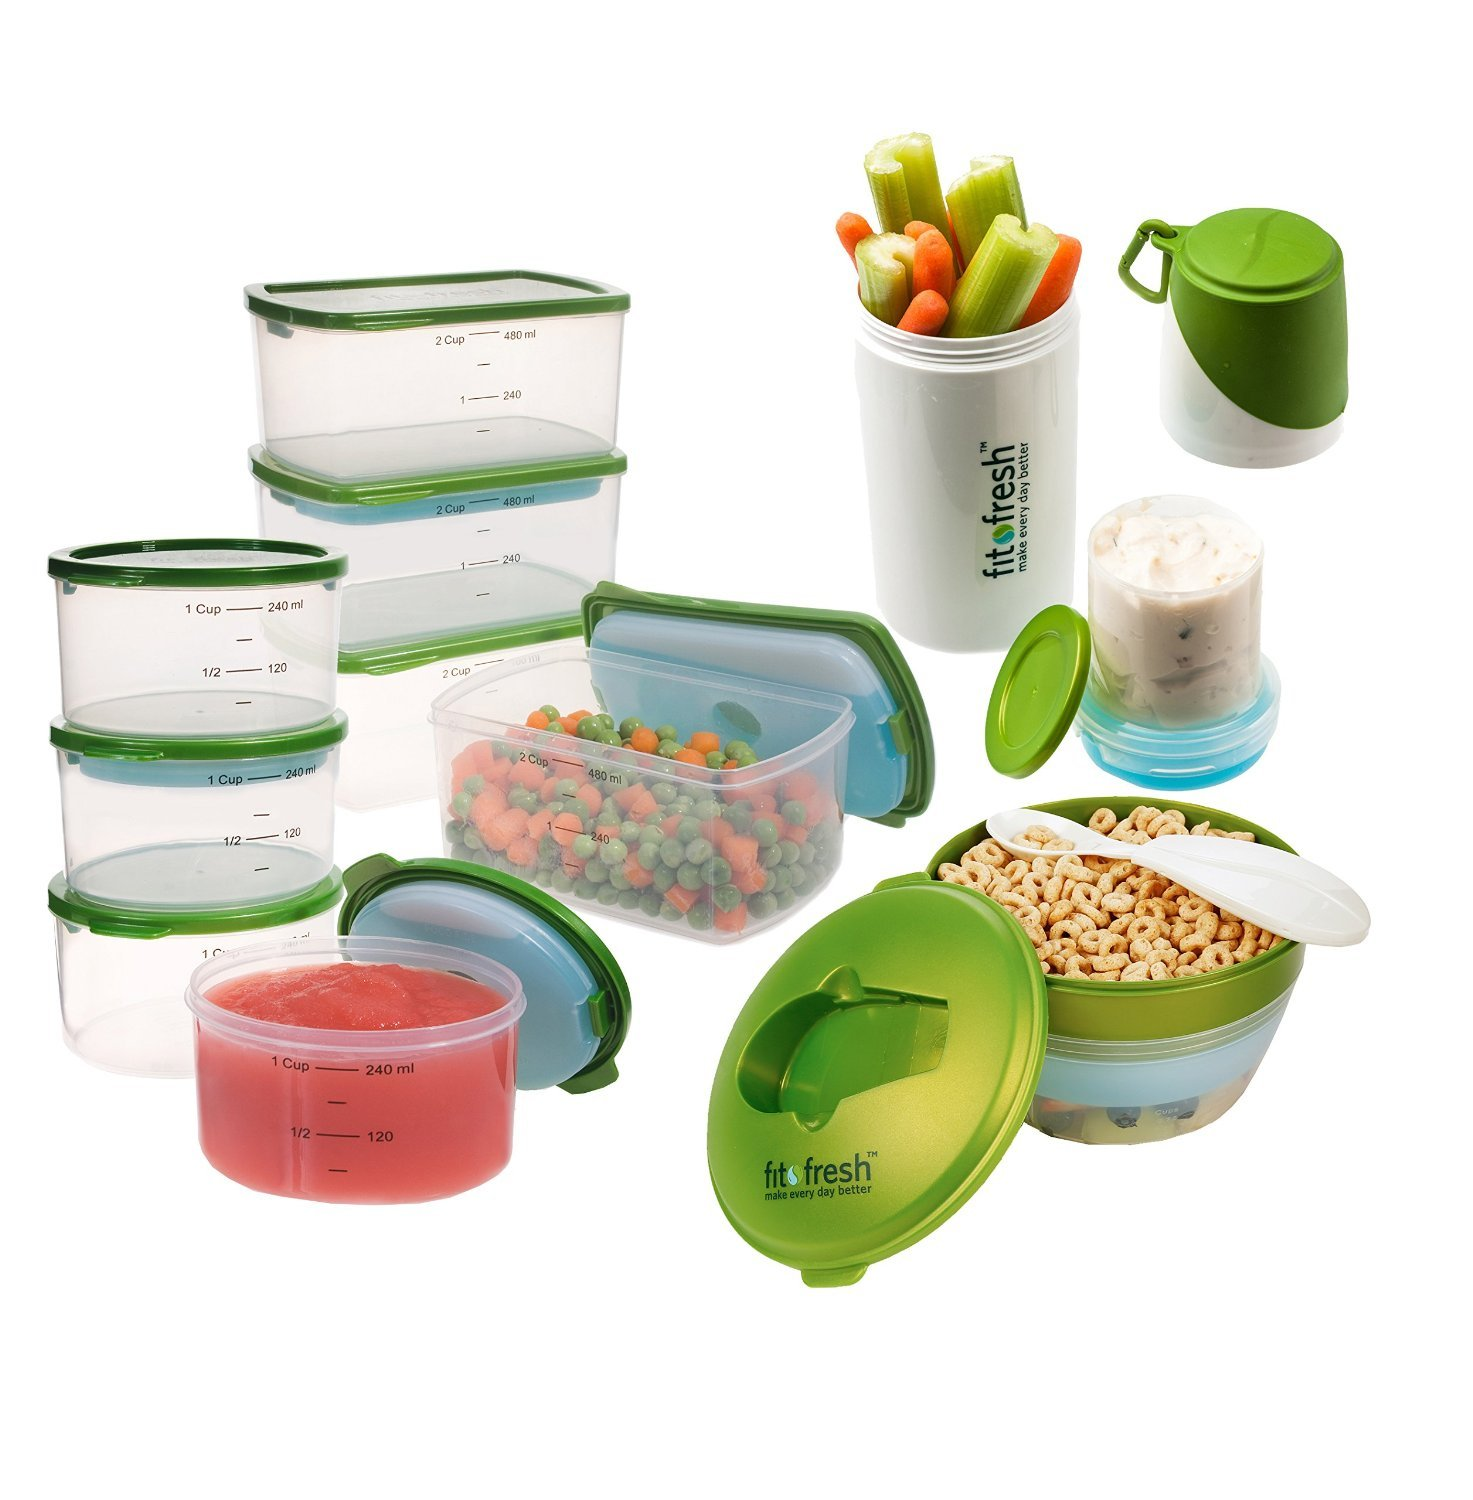 Fit & Fresh Perfect Portion Kit, Value Set Includes Reusable Portion Control Containers with Removable Ice Packs, BPA-Free Food Storage for School, Work, On-the-Go Snacks